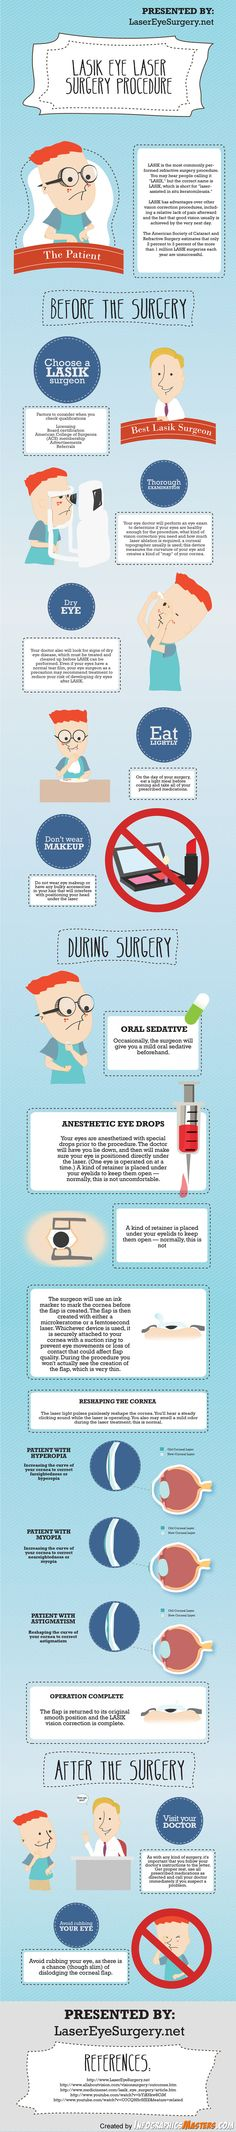 Lasik eye laser surgery procedure #infographic